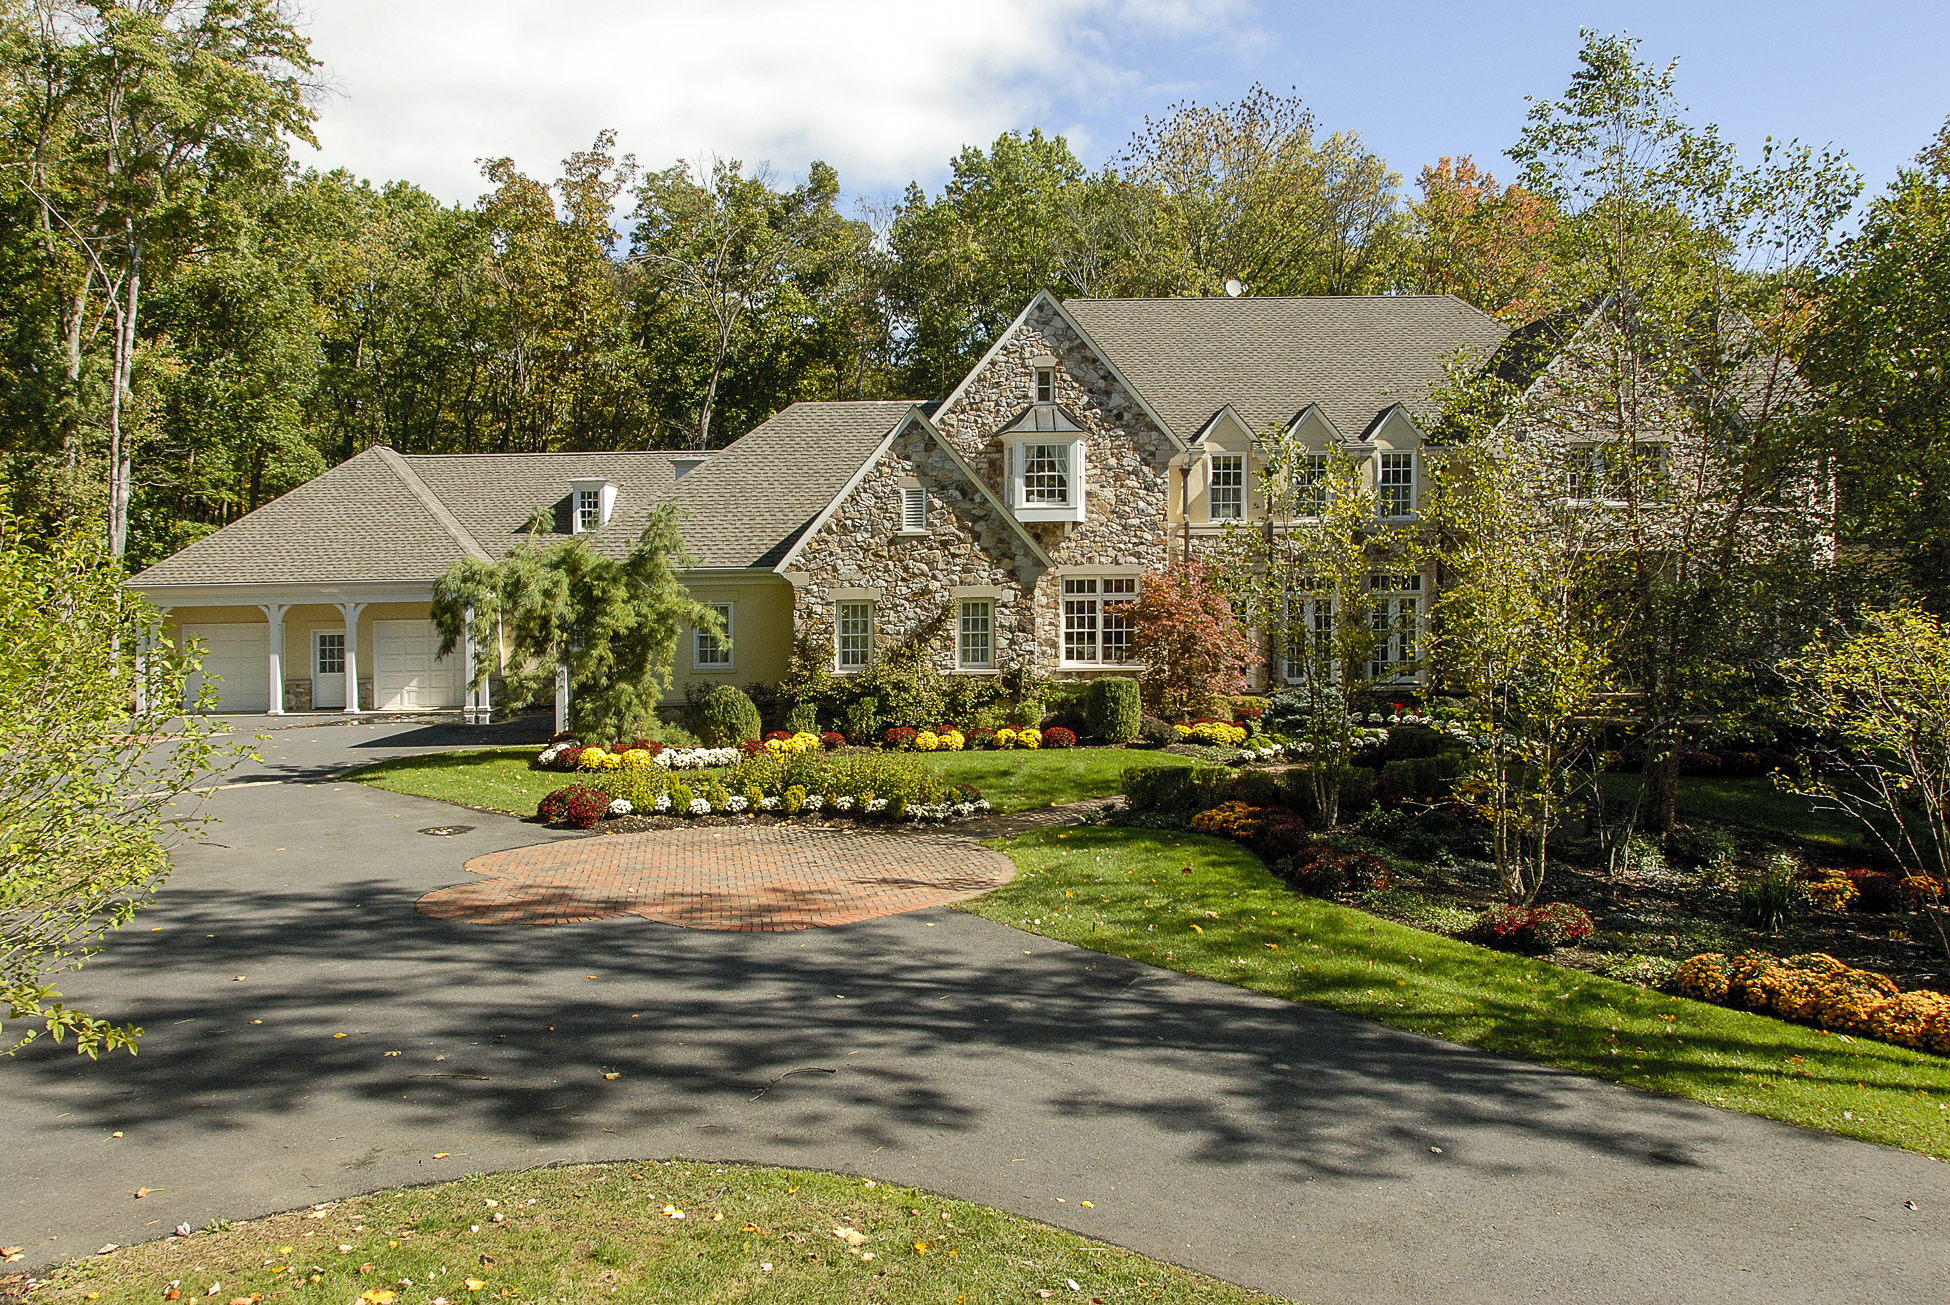 Maison unifamiliale pour l Vente à Magnificent Manor Home in Princeton's Coveted Rushbrook 27 Running Cedar Road Princeton, New Jersey 08540 États-Unis